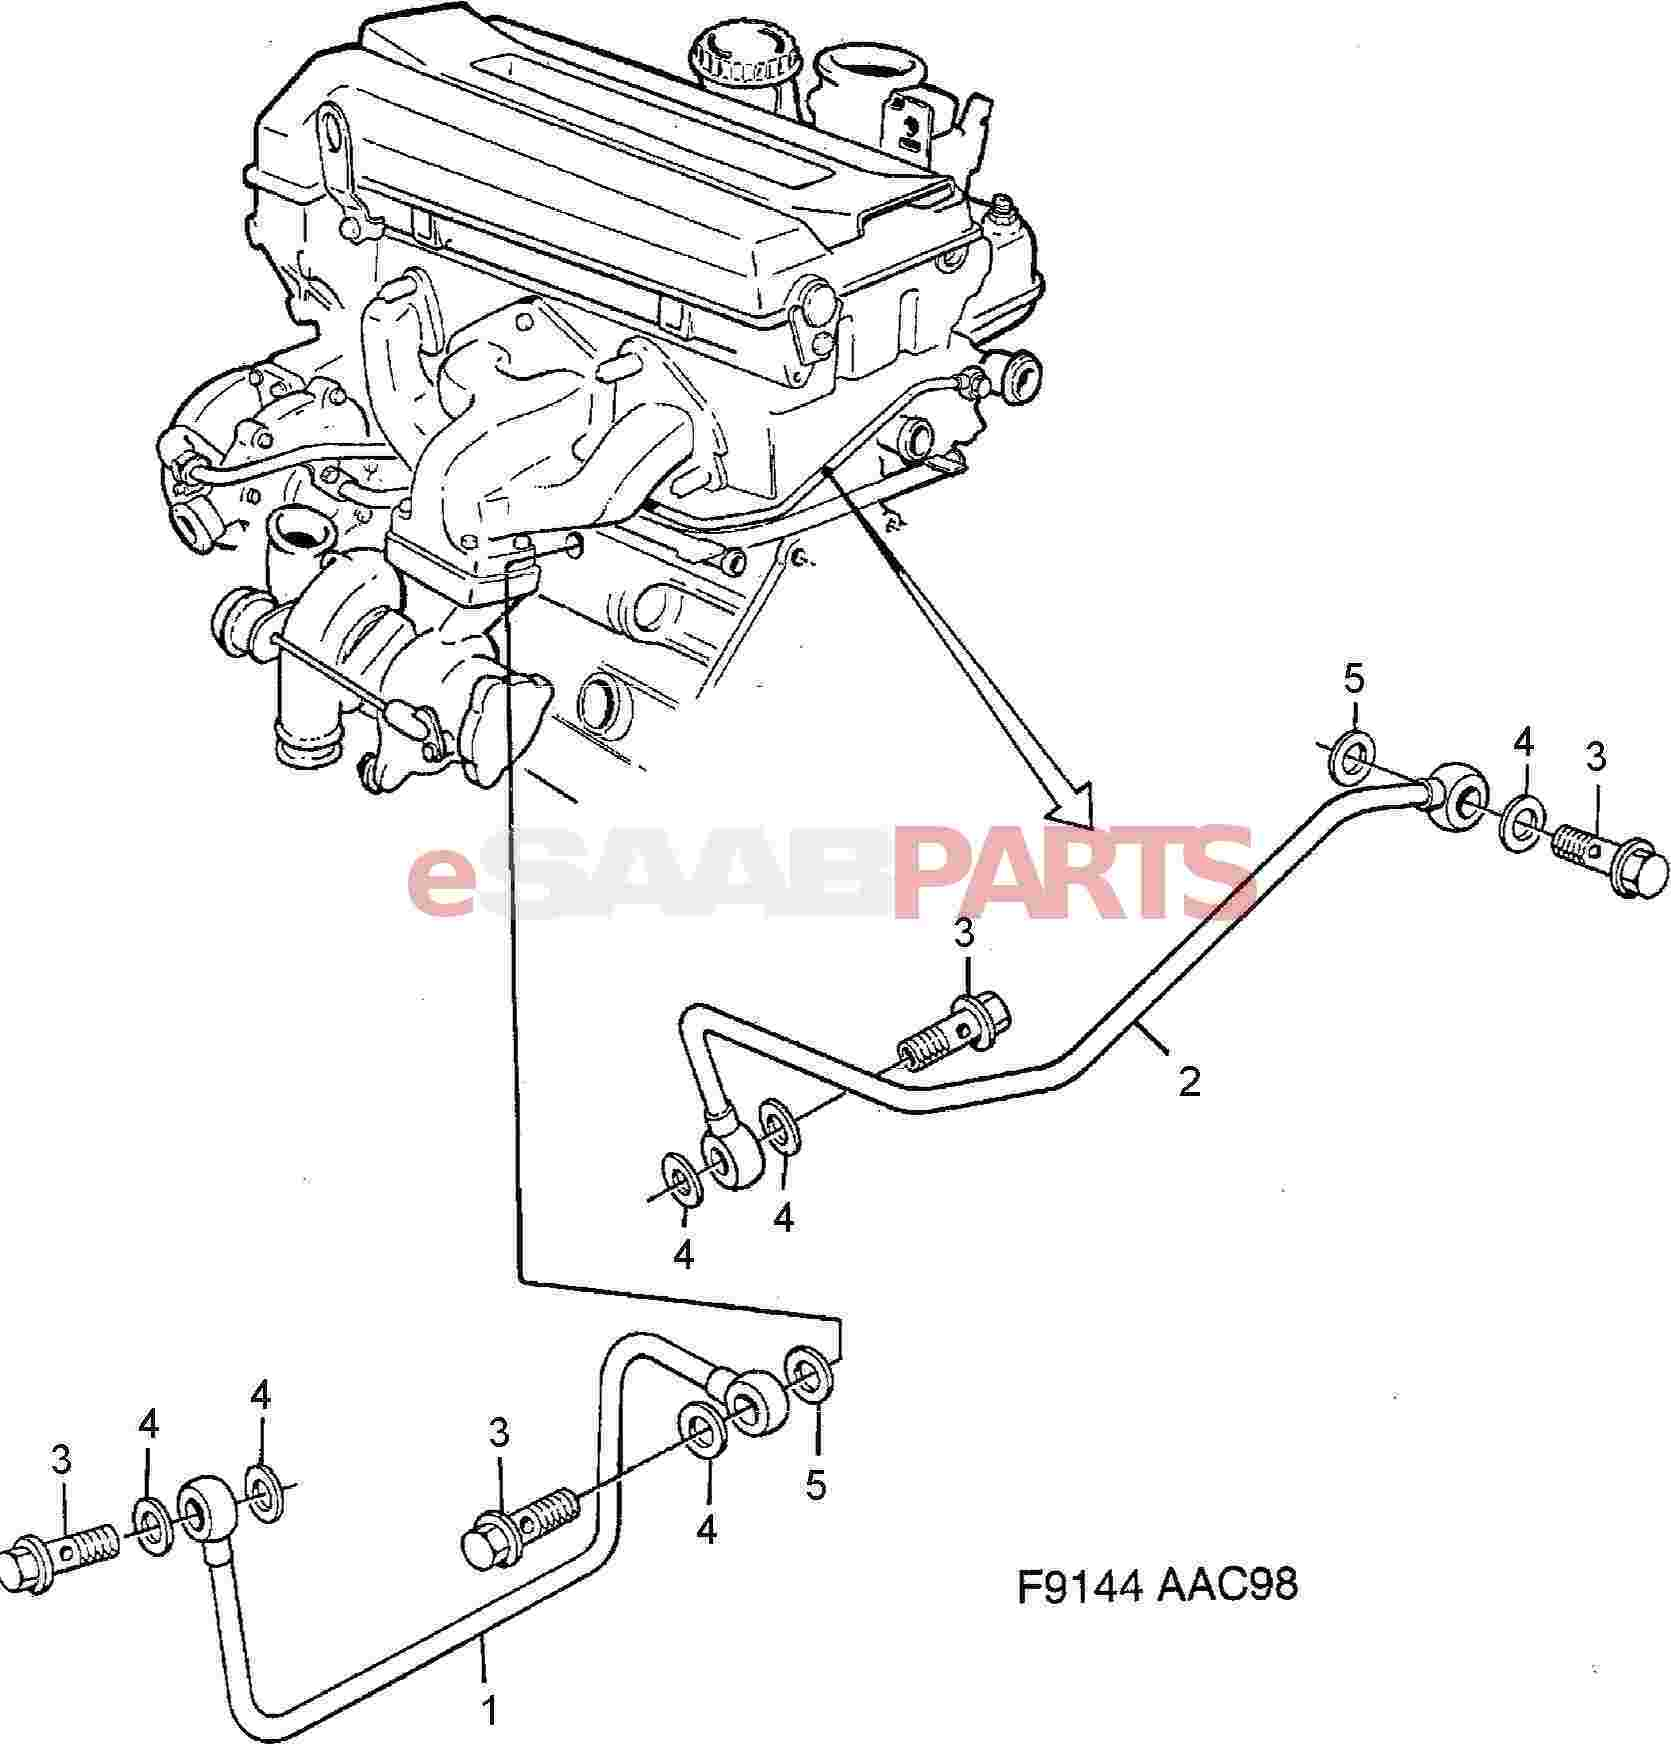 1997 Saab 900 Wiring Diagram Diagrams ImageResizerTool Com